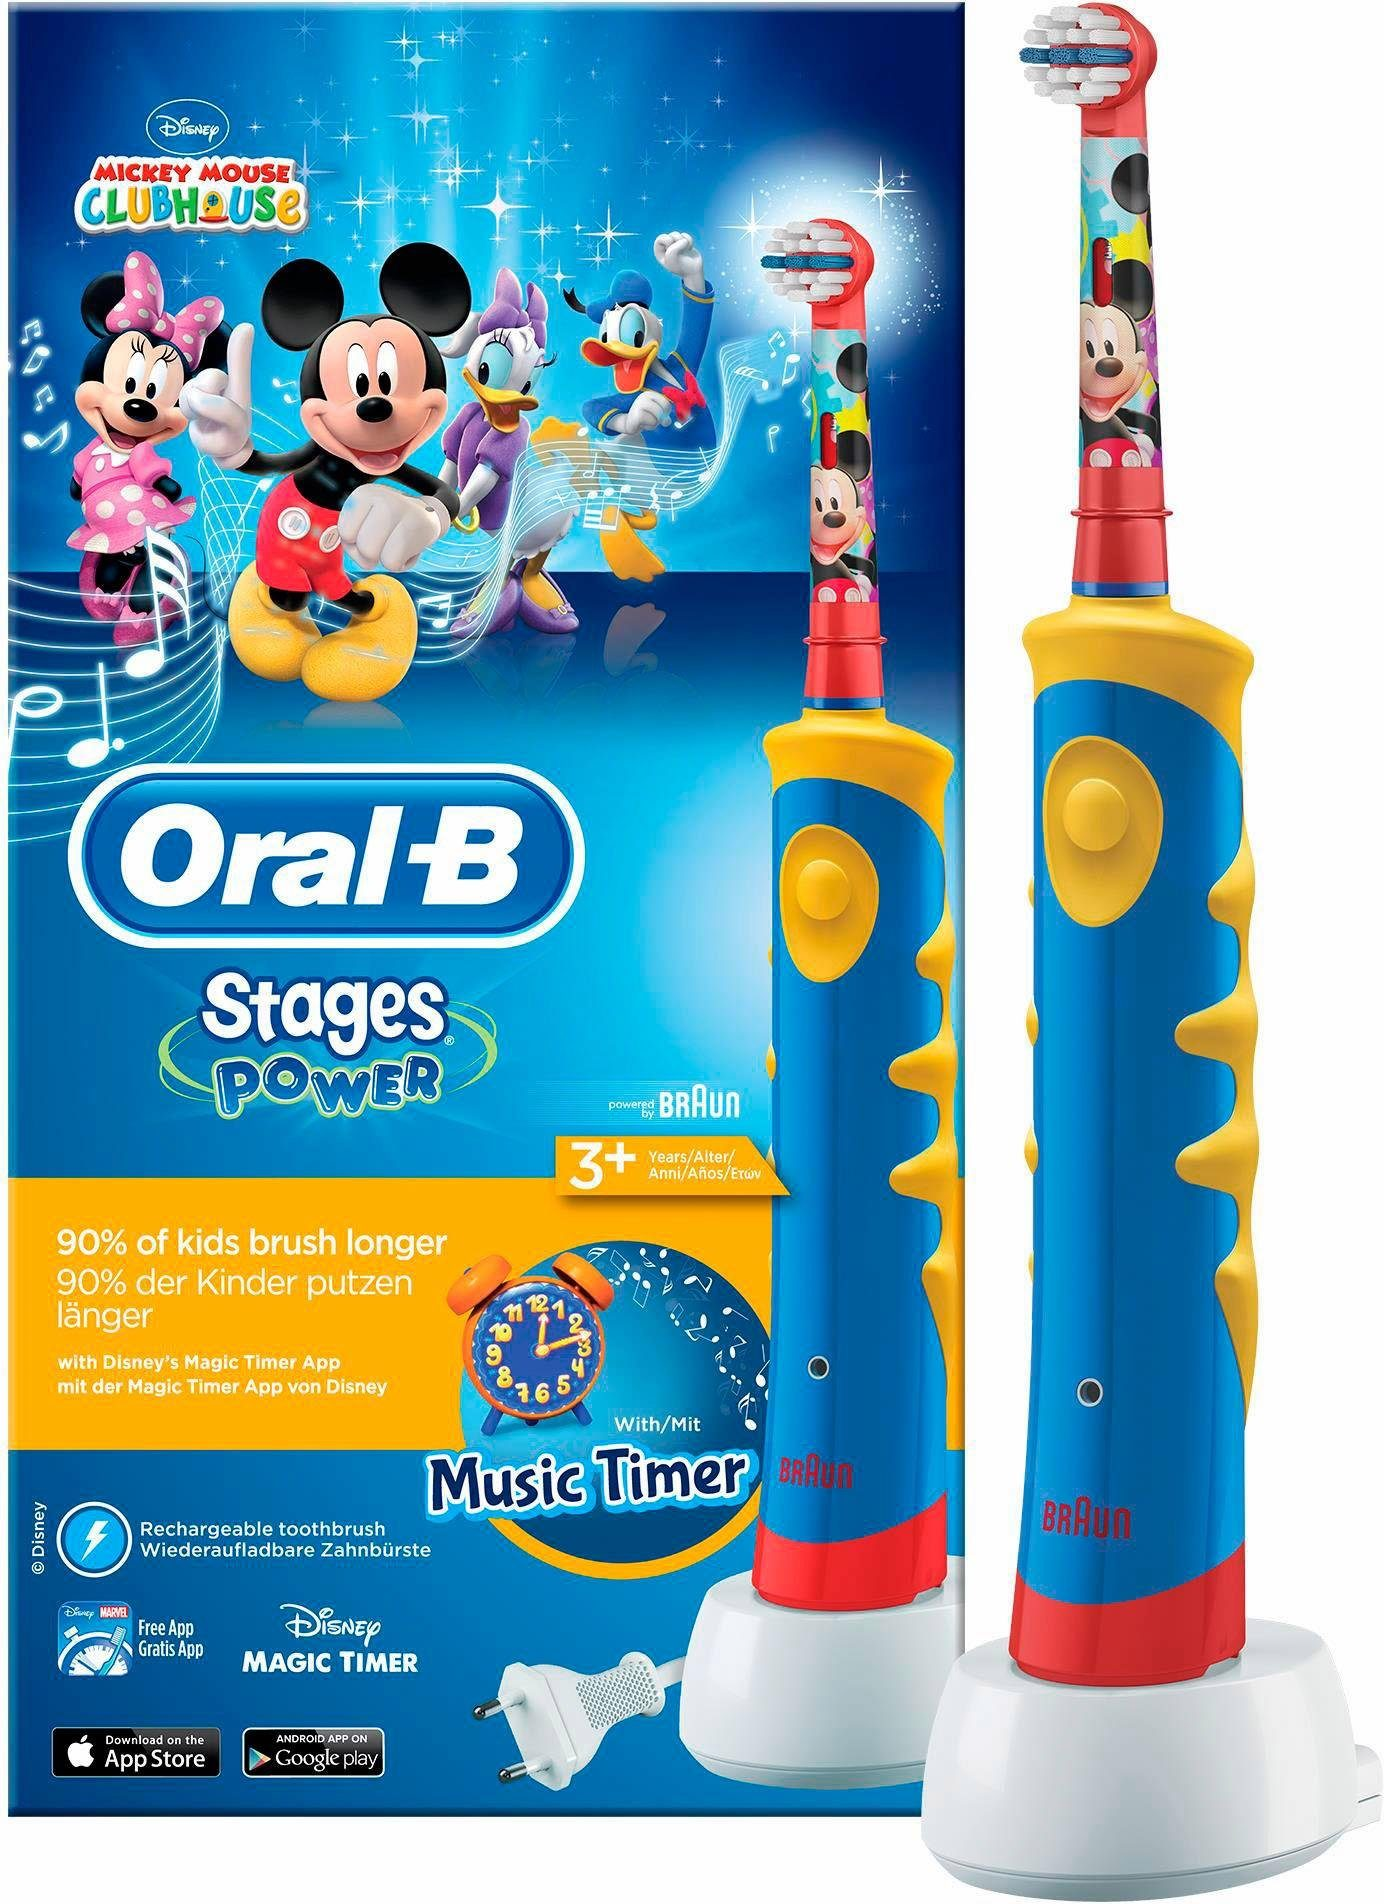 Oral-B Elektrische Zahnbürste Stages Power Kids, mit Disney-Micky-Maus